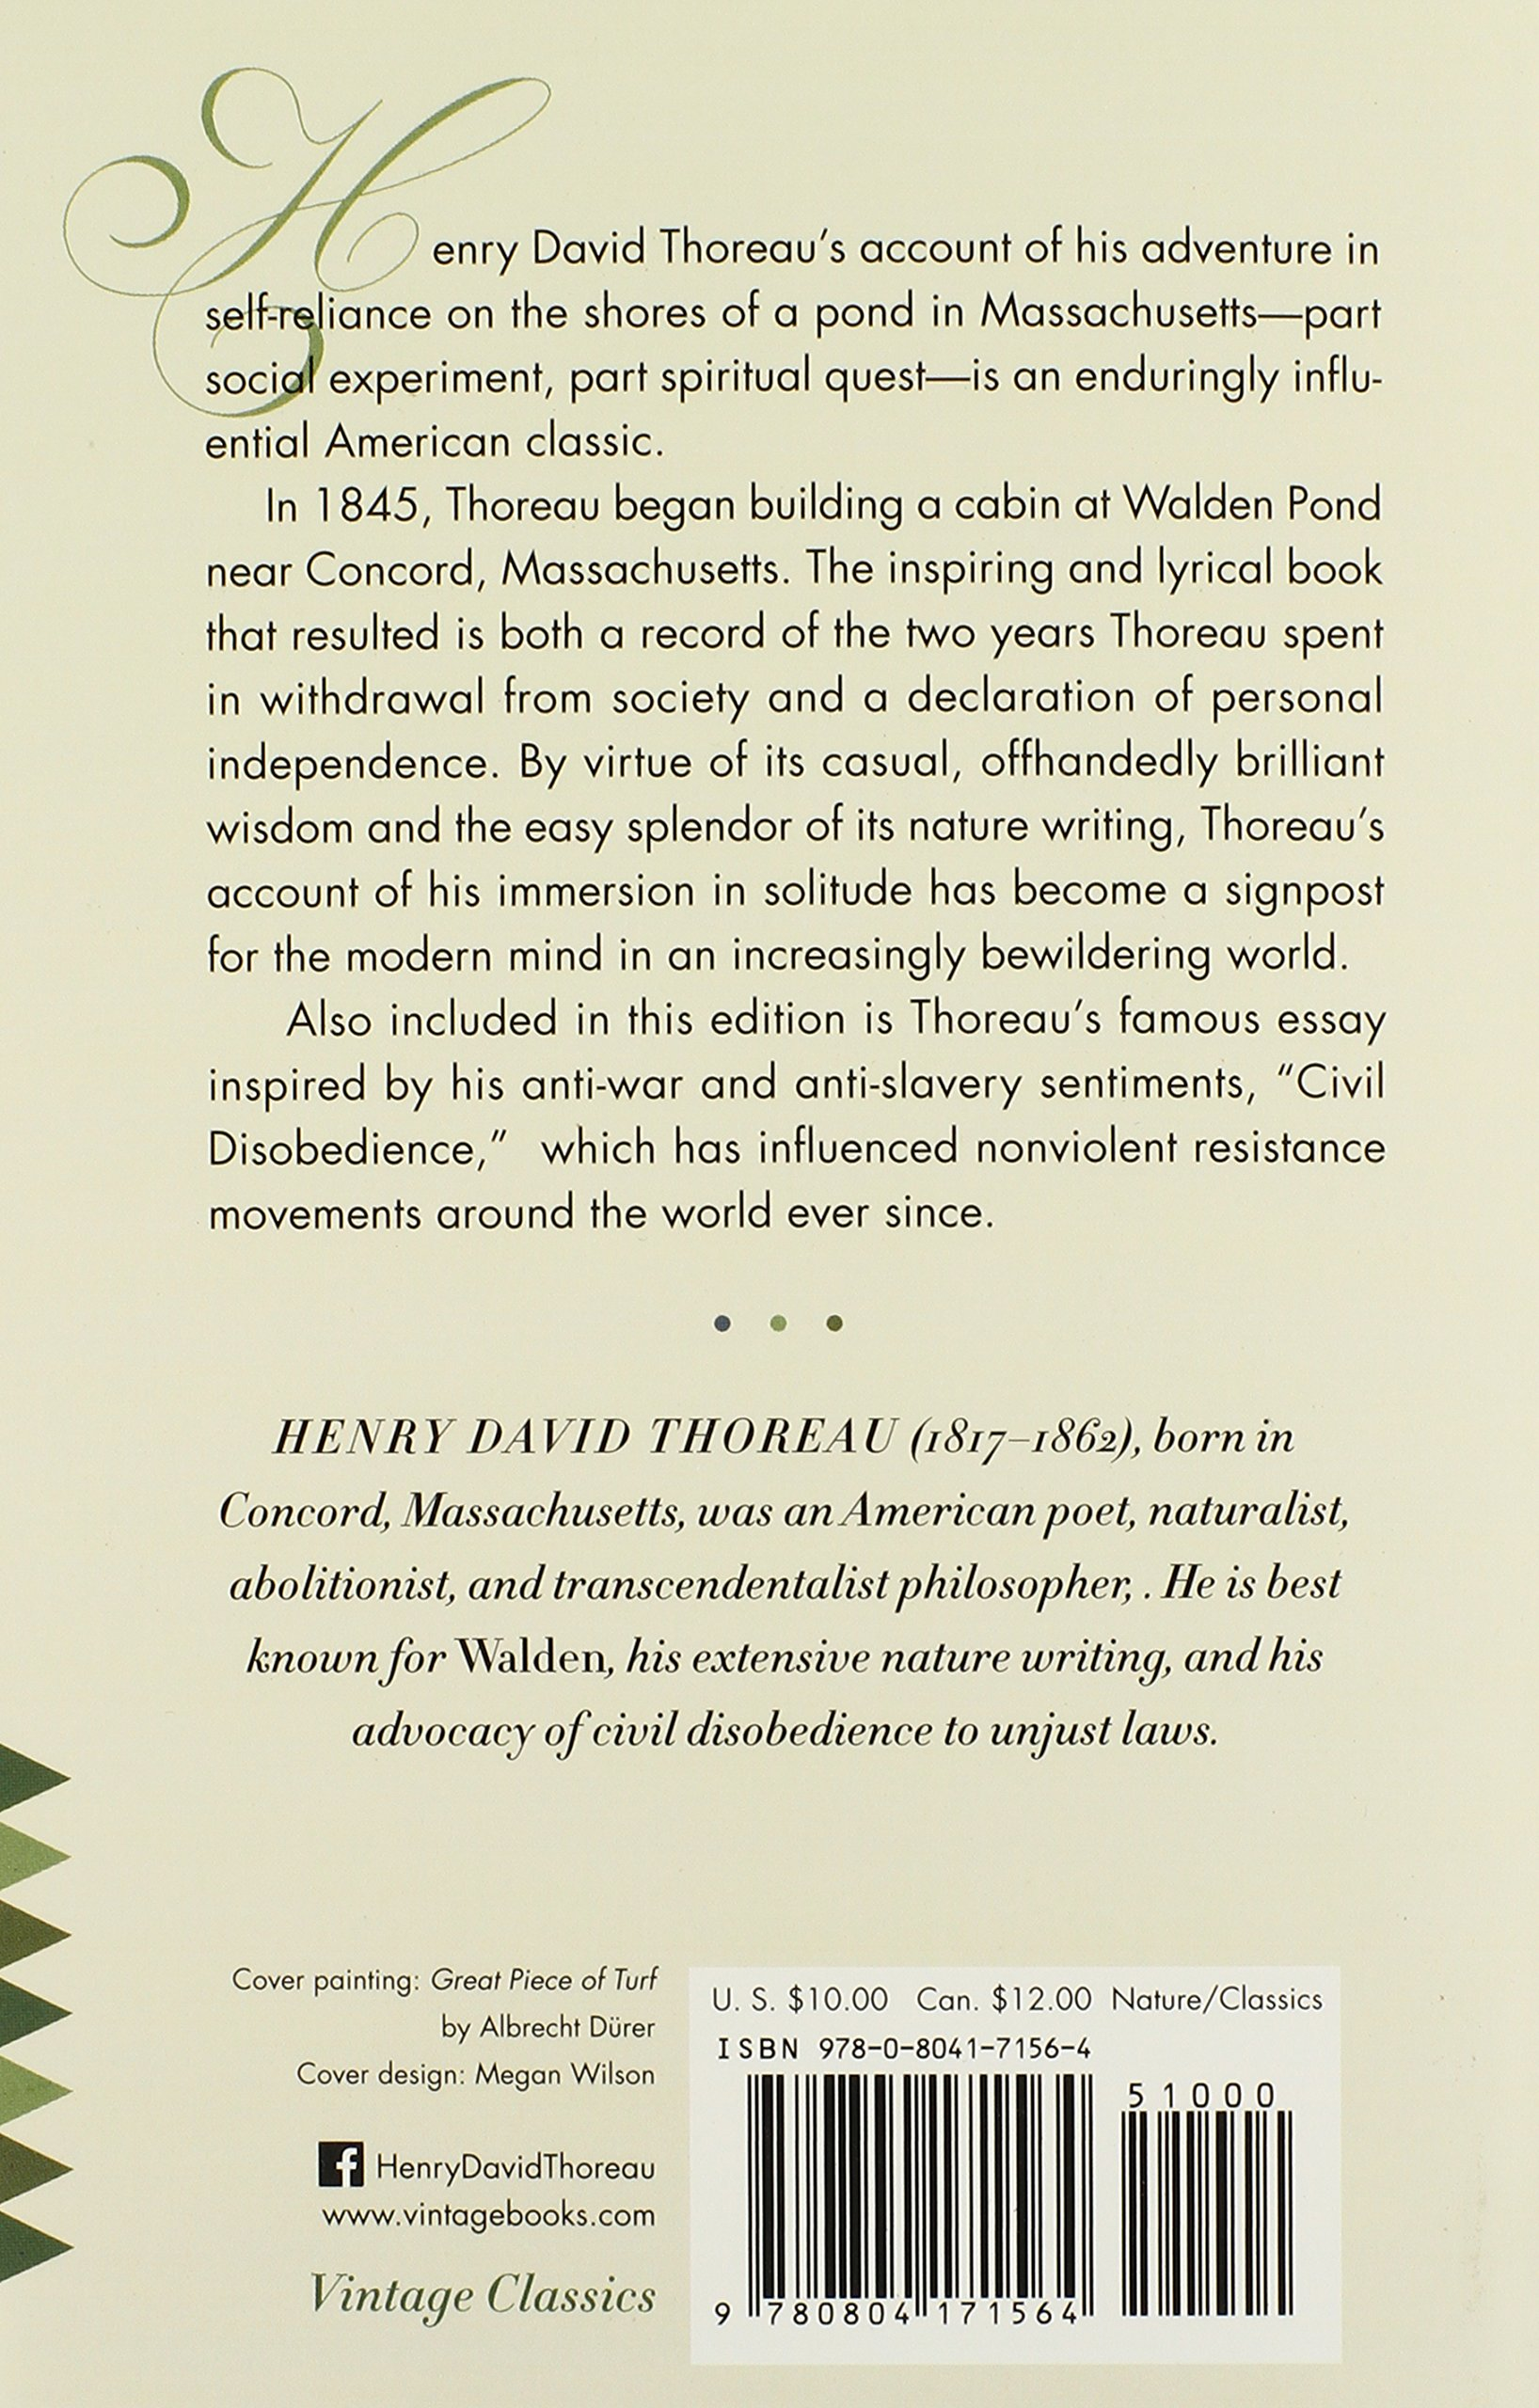 walden civil disobedience vintage classics henry david walden civil disobedience vintage classics henry david thoreau 9780804171564 amazon com books